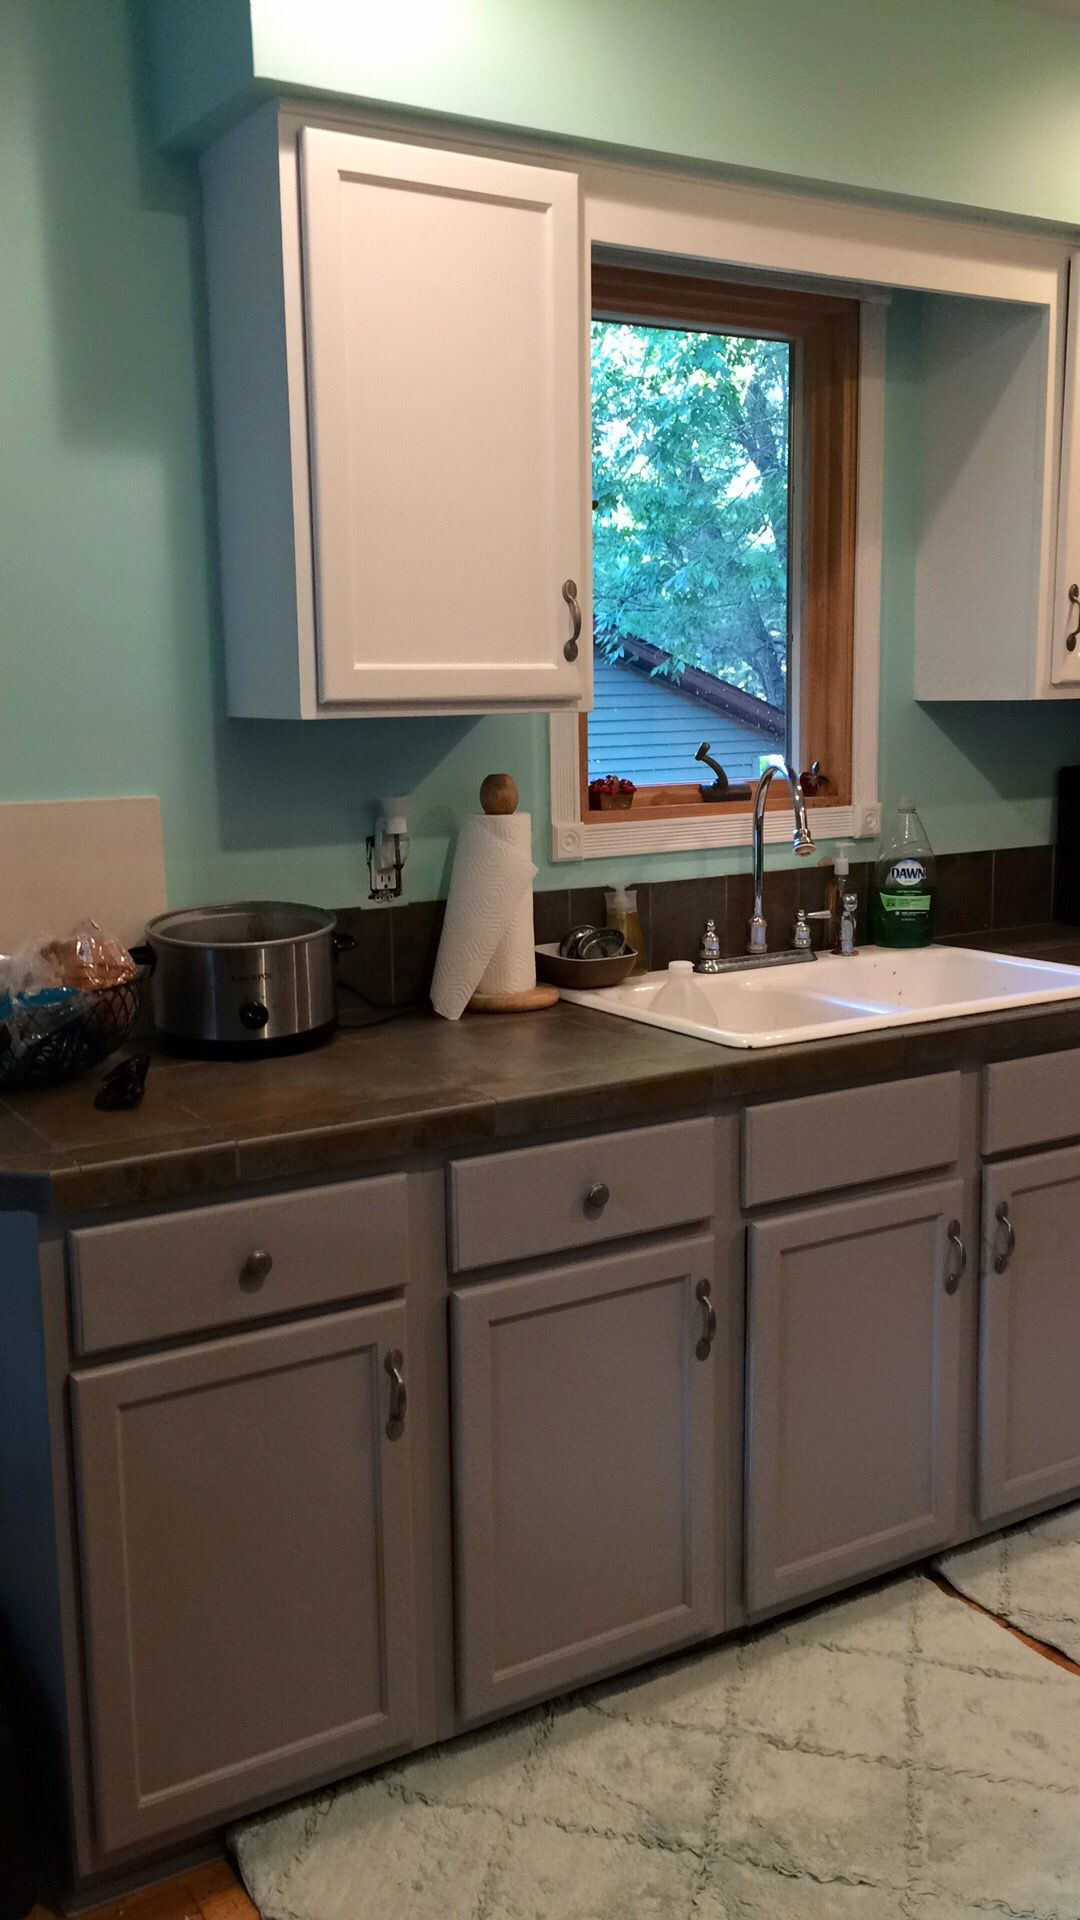 Working On Our Kitchen Sherwin Williams Tame Teal Proper Grey And Extra White So Happy Home Kitchens Kitchen Decor Teal Kitchen